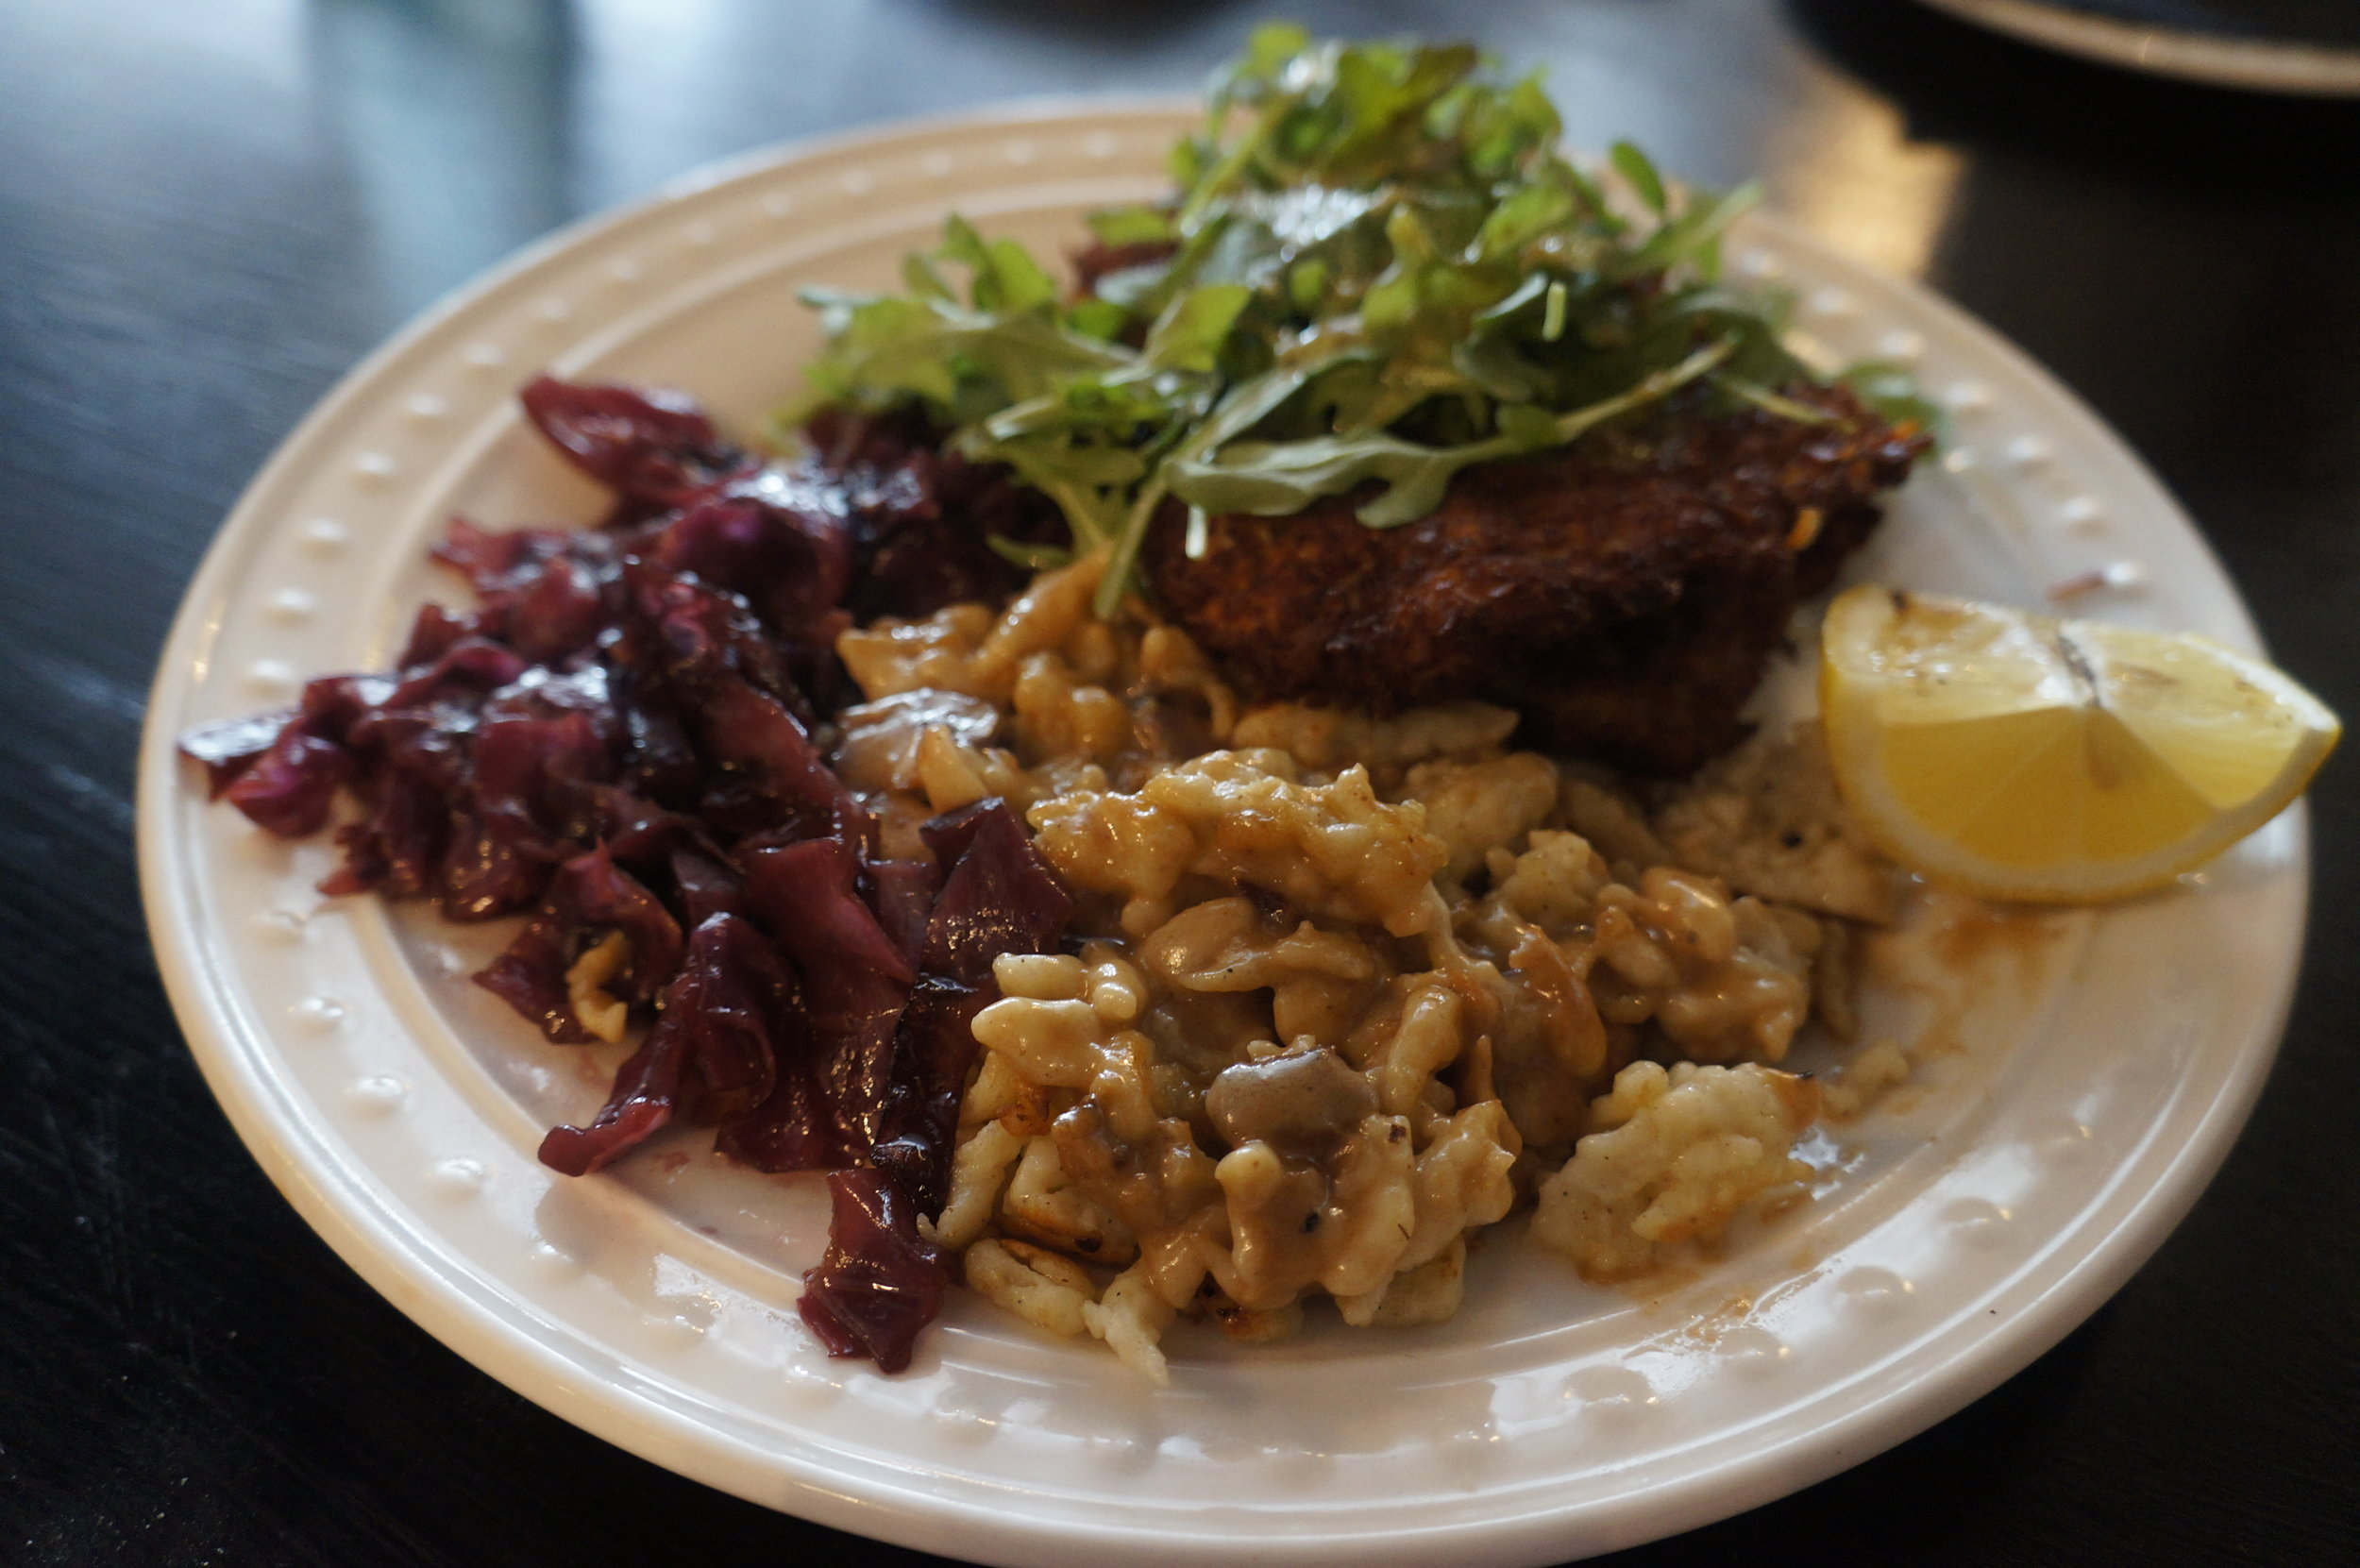 The Haus Schnitzel —   Thinly pounded, coconut battered and fried pork loin served with spaetzle, red cabbage, topped with arugula and mint dressing.